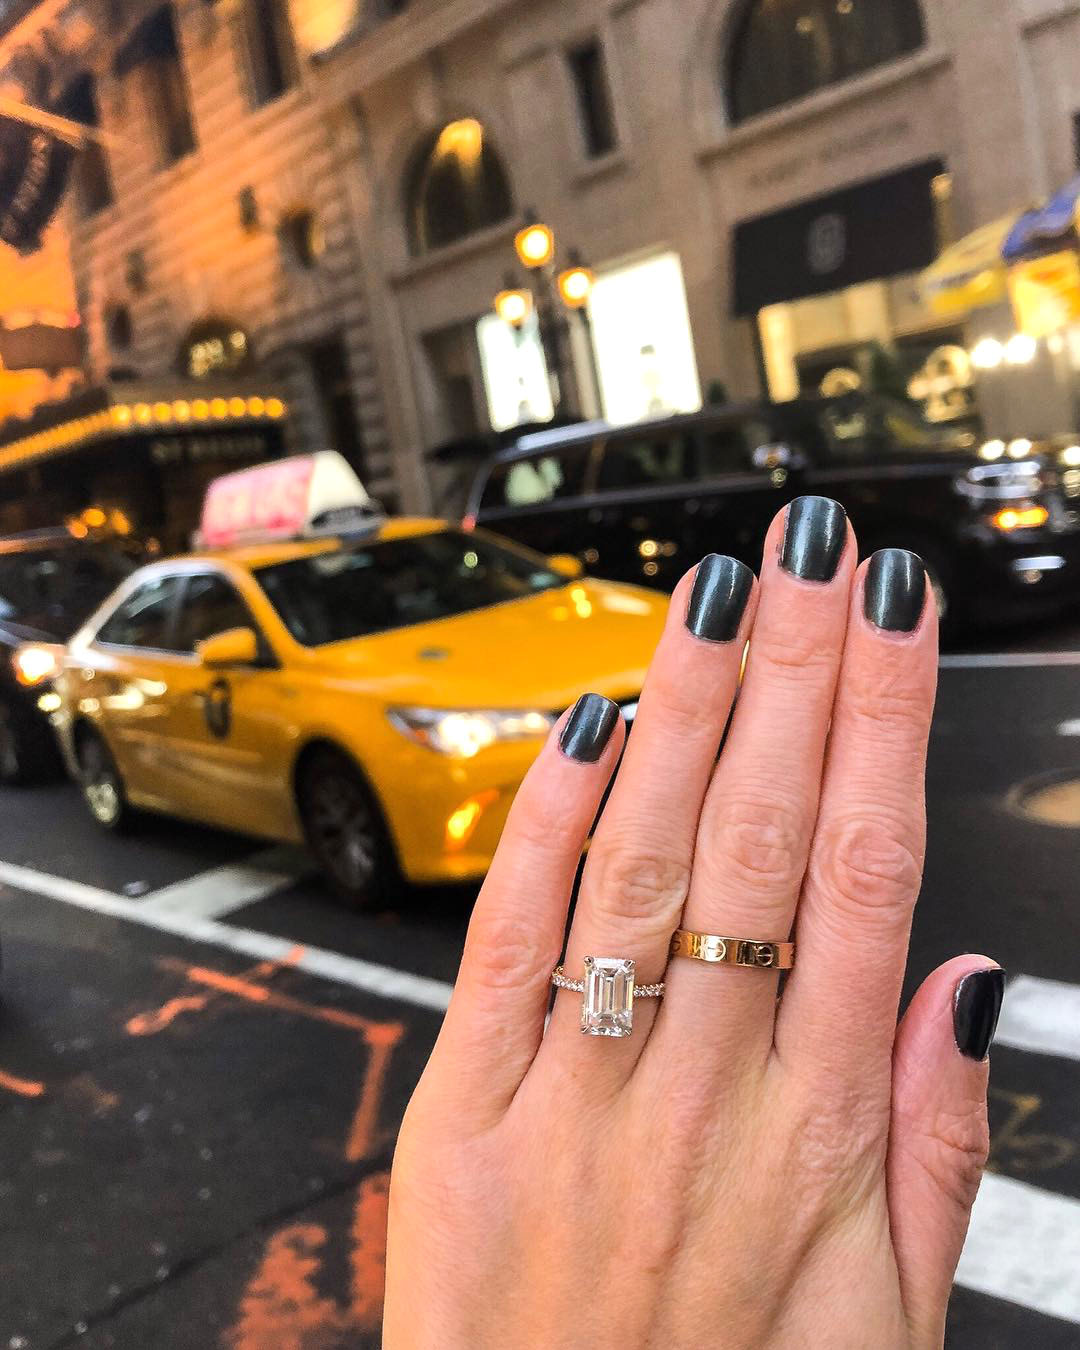 engagement ring selfie cityscape with yellow taxi cab in background